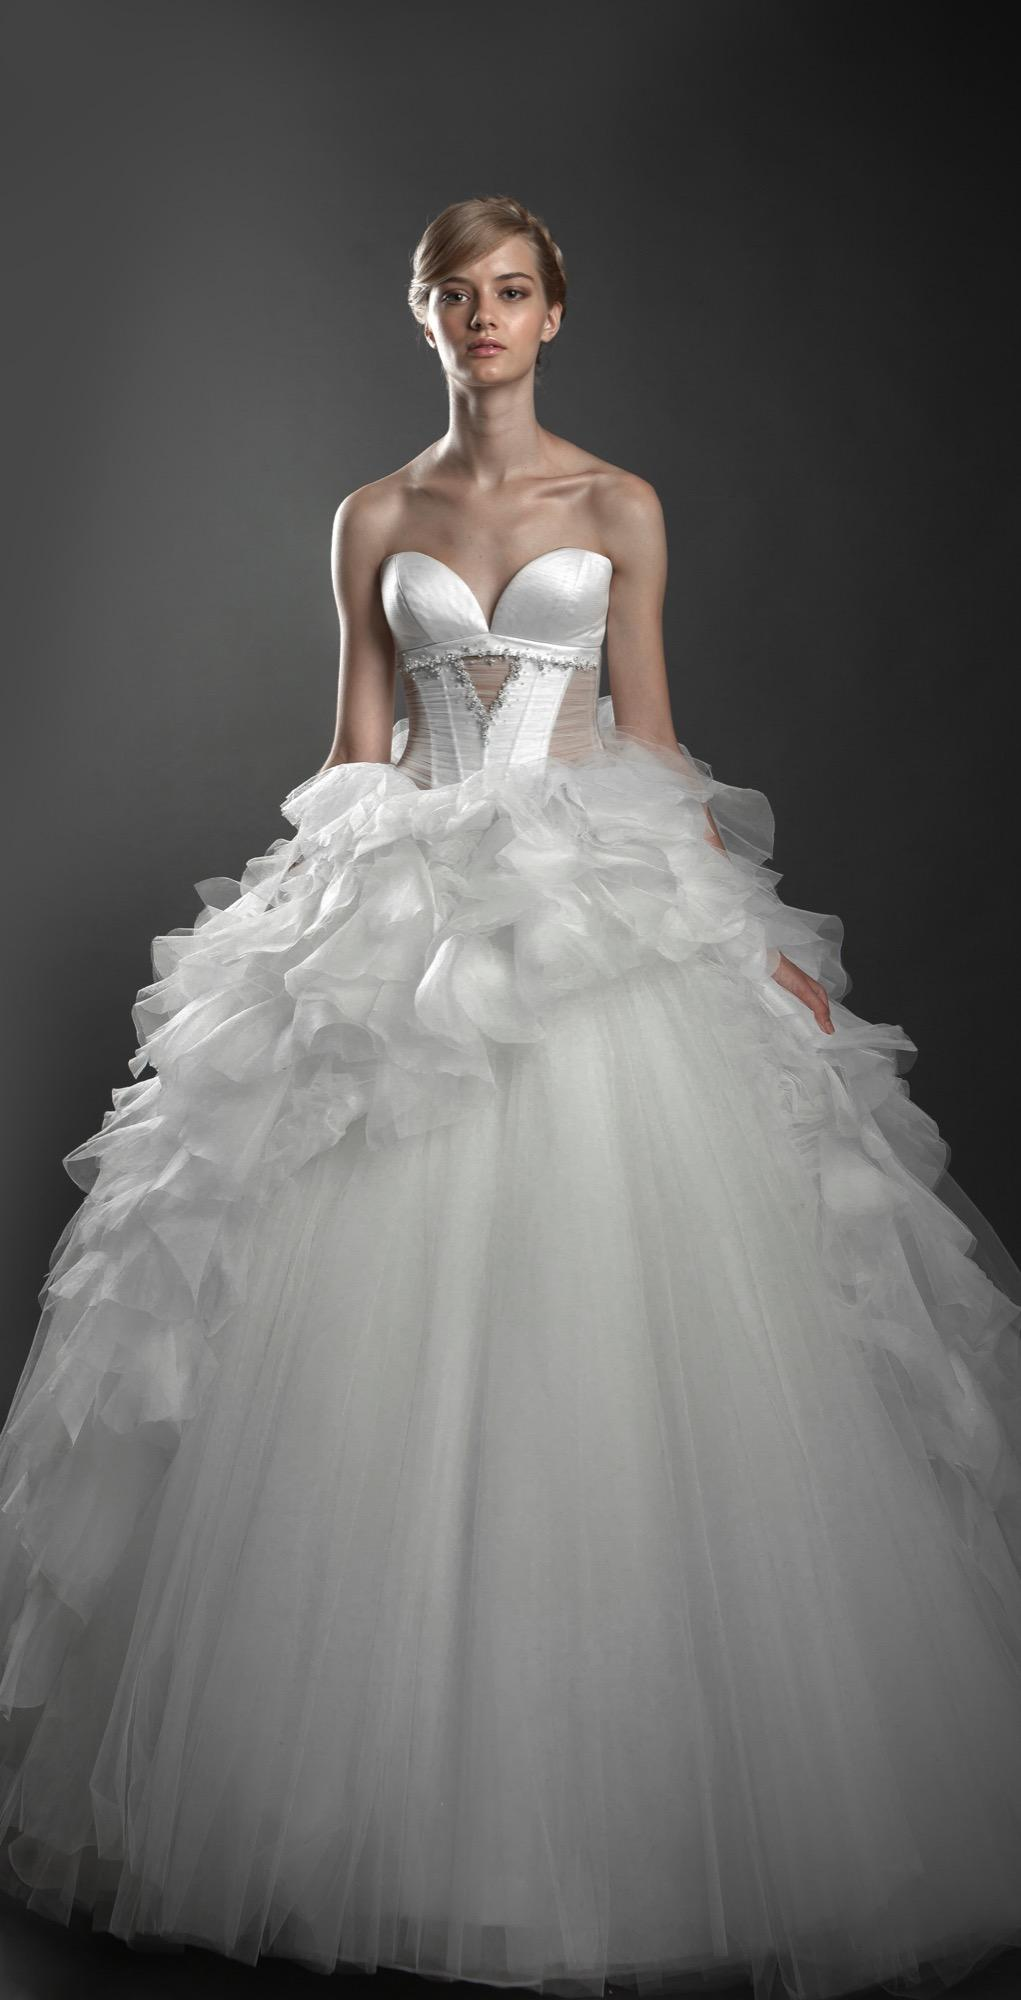 http://www.pwimages.com/images/perfectbride/68c92abe65a4746a758638b89c26e852-IMG_5044.jpg